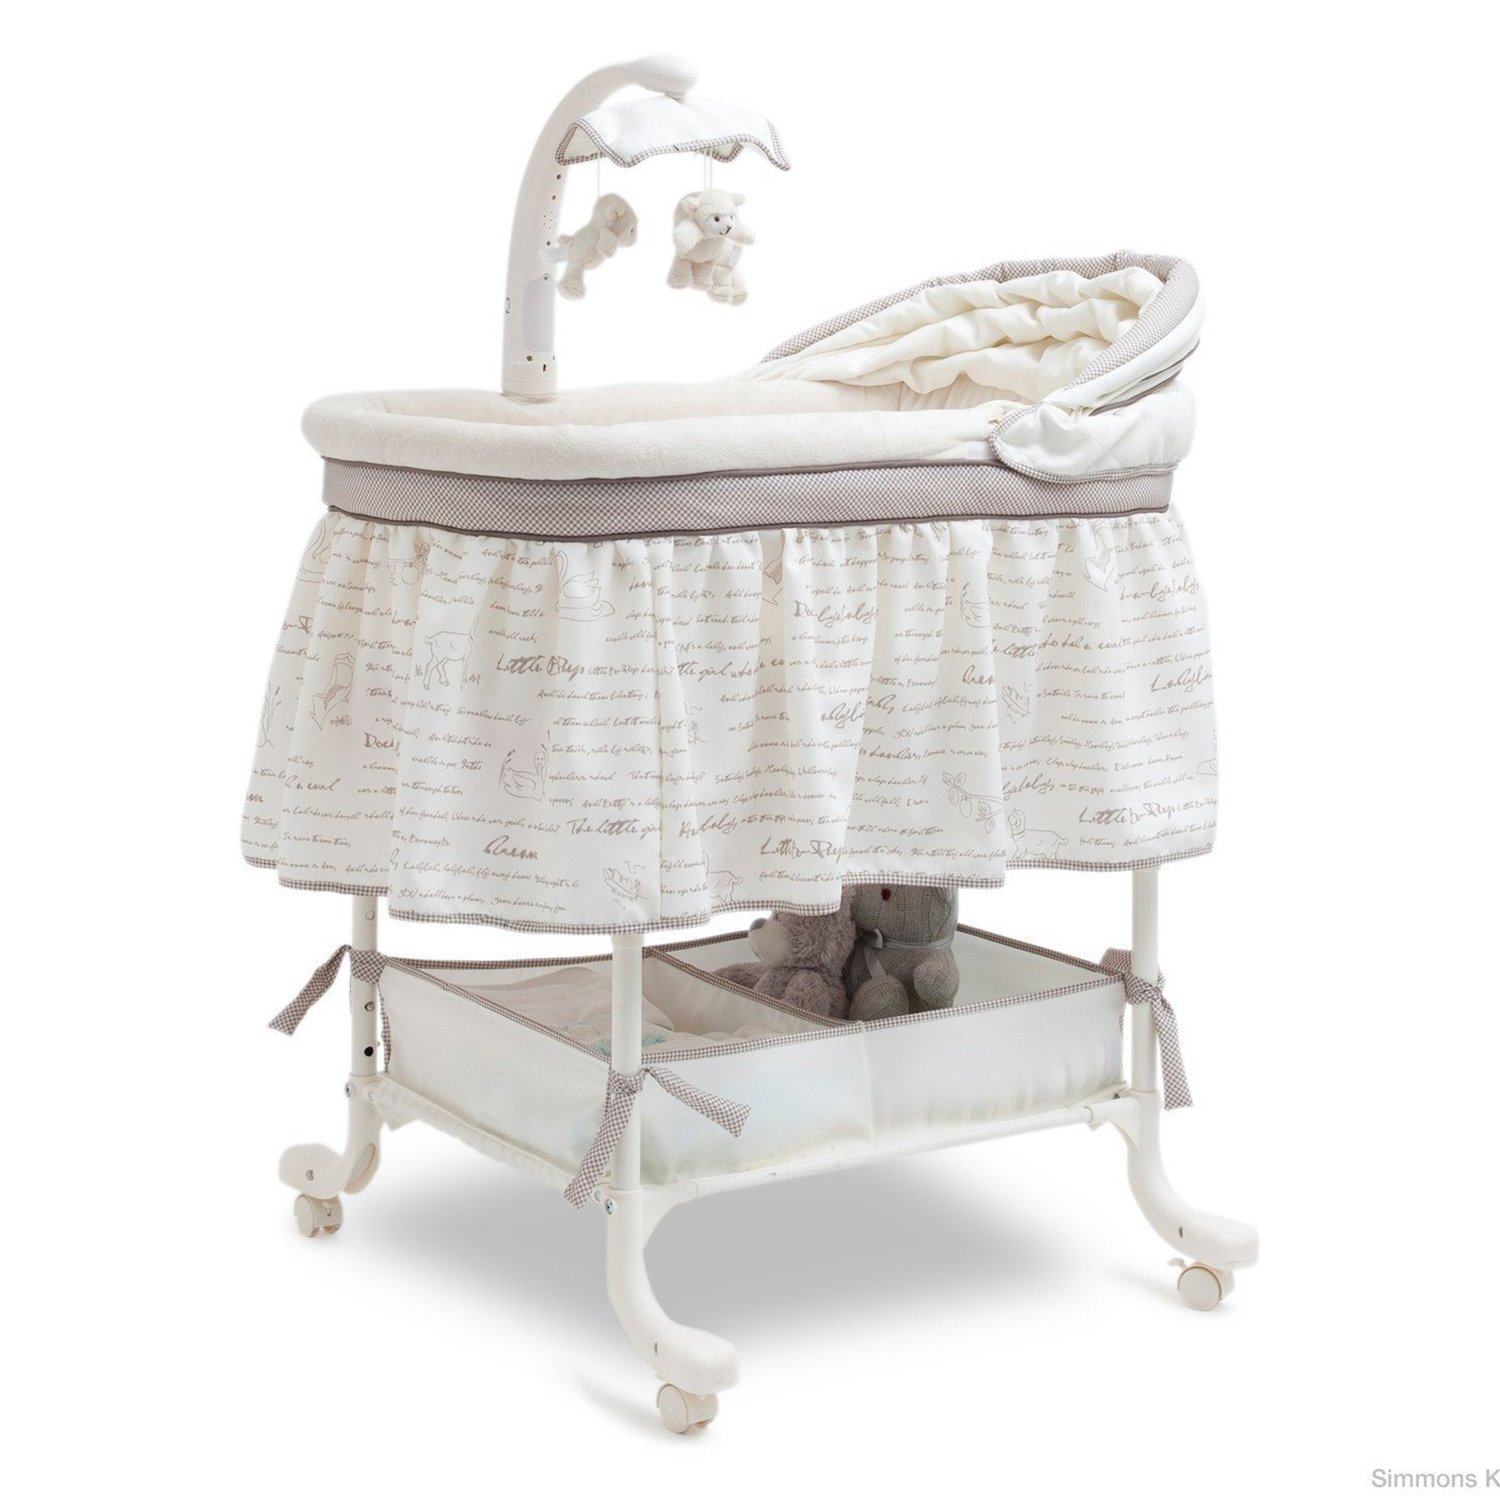 simmons nursery furniture. Simmons Kids Deluxe Slumber Toddler Baby Gliding Nursery Bassinet, Seaside Furniture